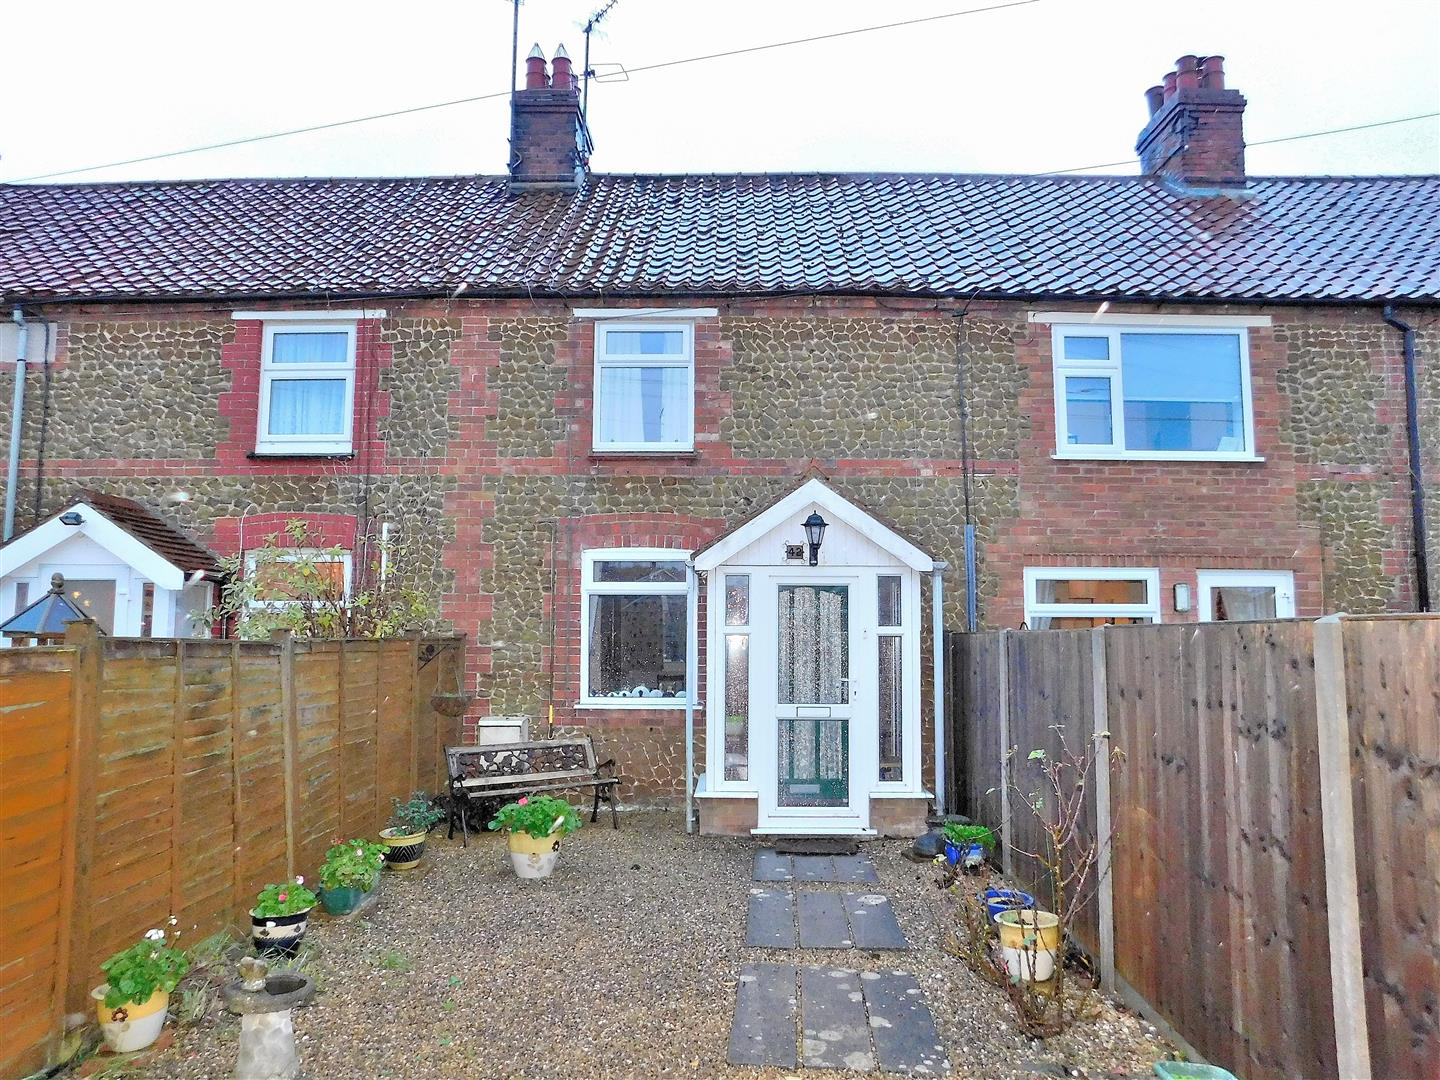 3 bed terraced house for sale in King's Lynn, PE31 7QN, PE31